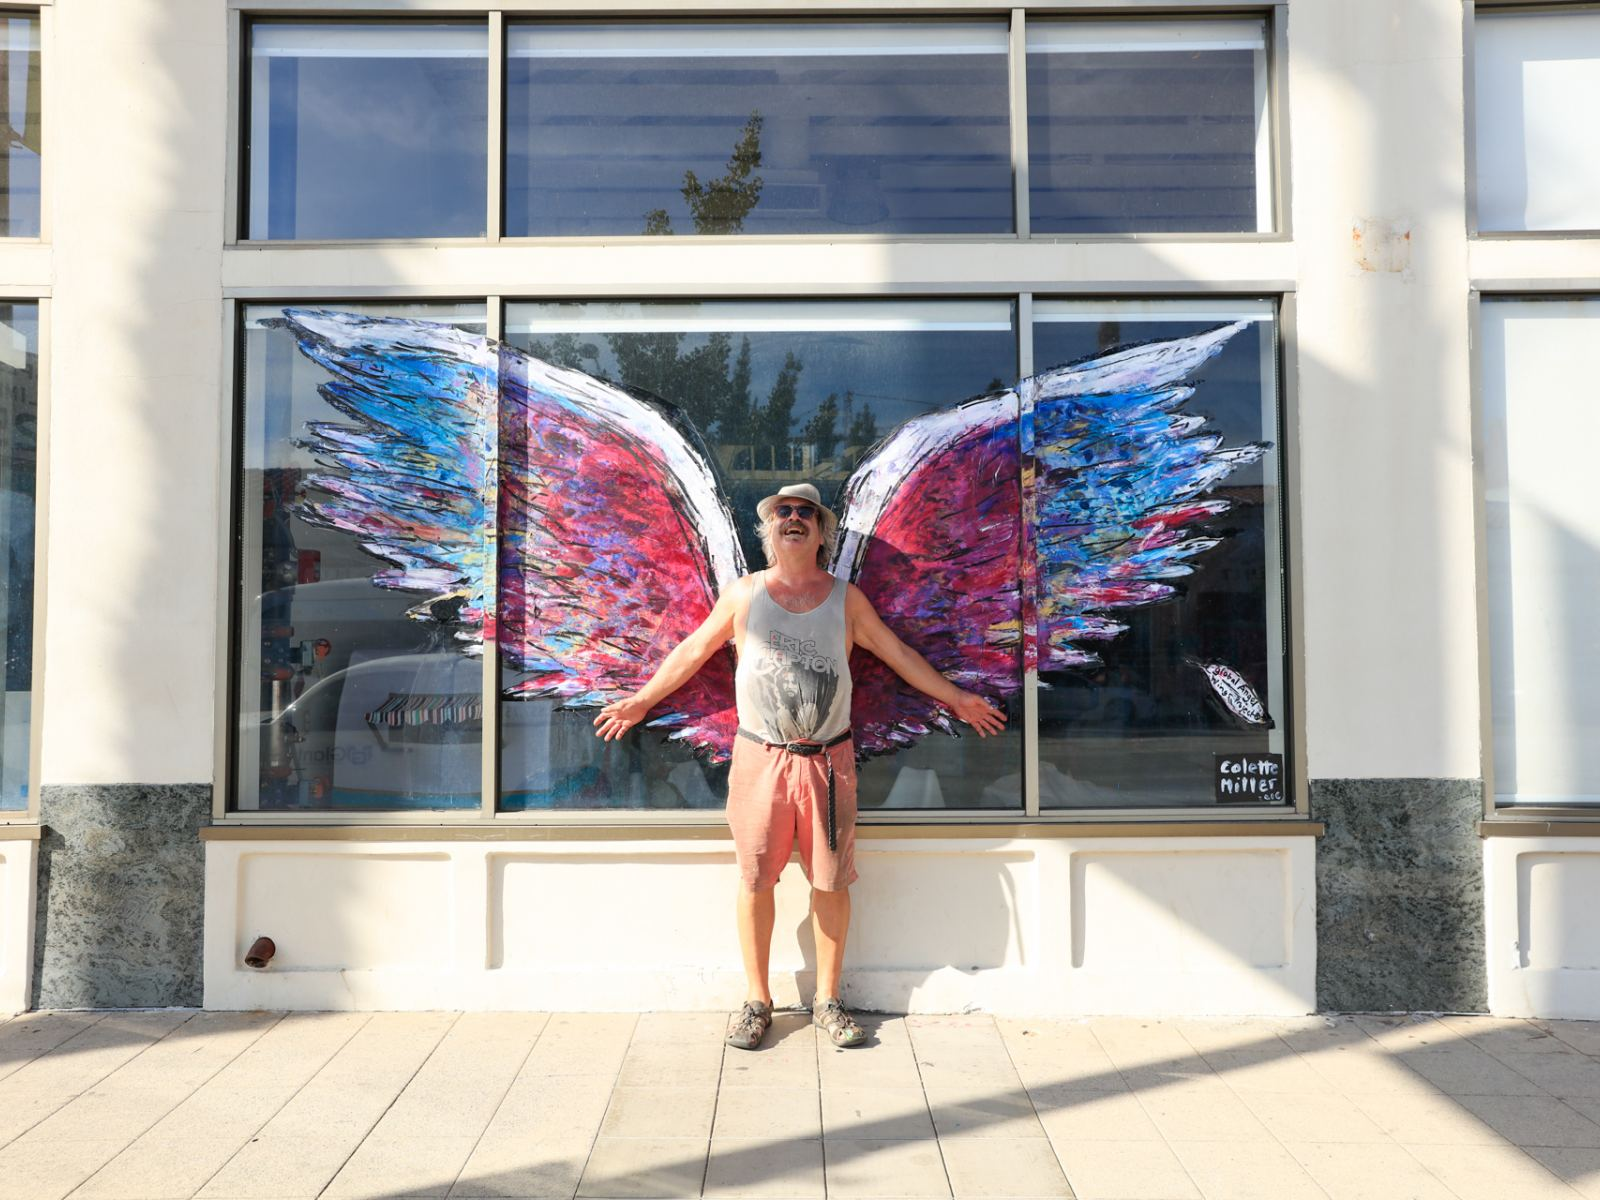 Discover the global angel wings project in los angeles